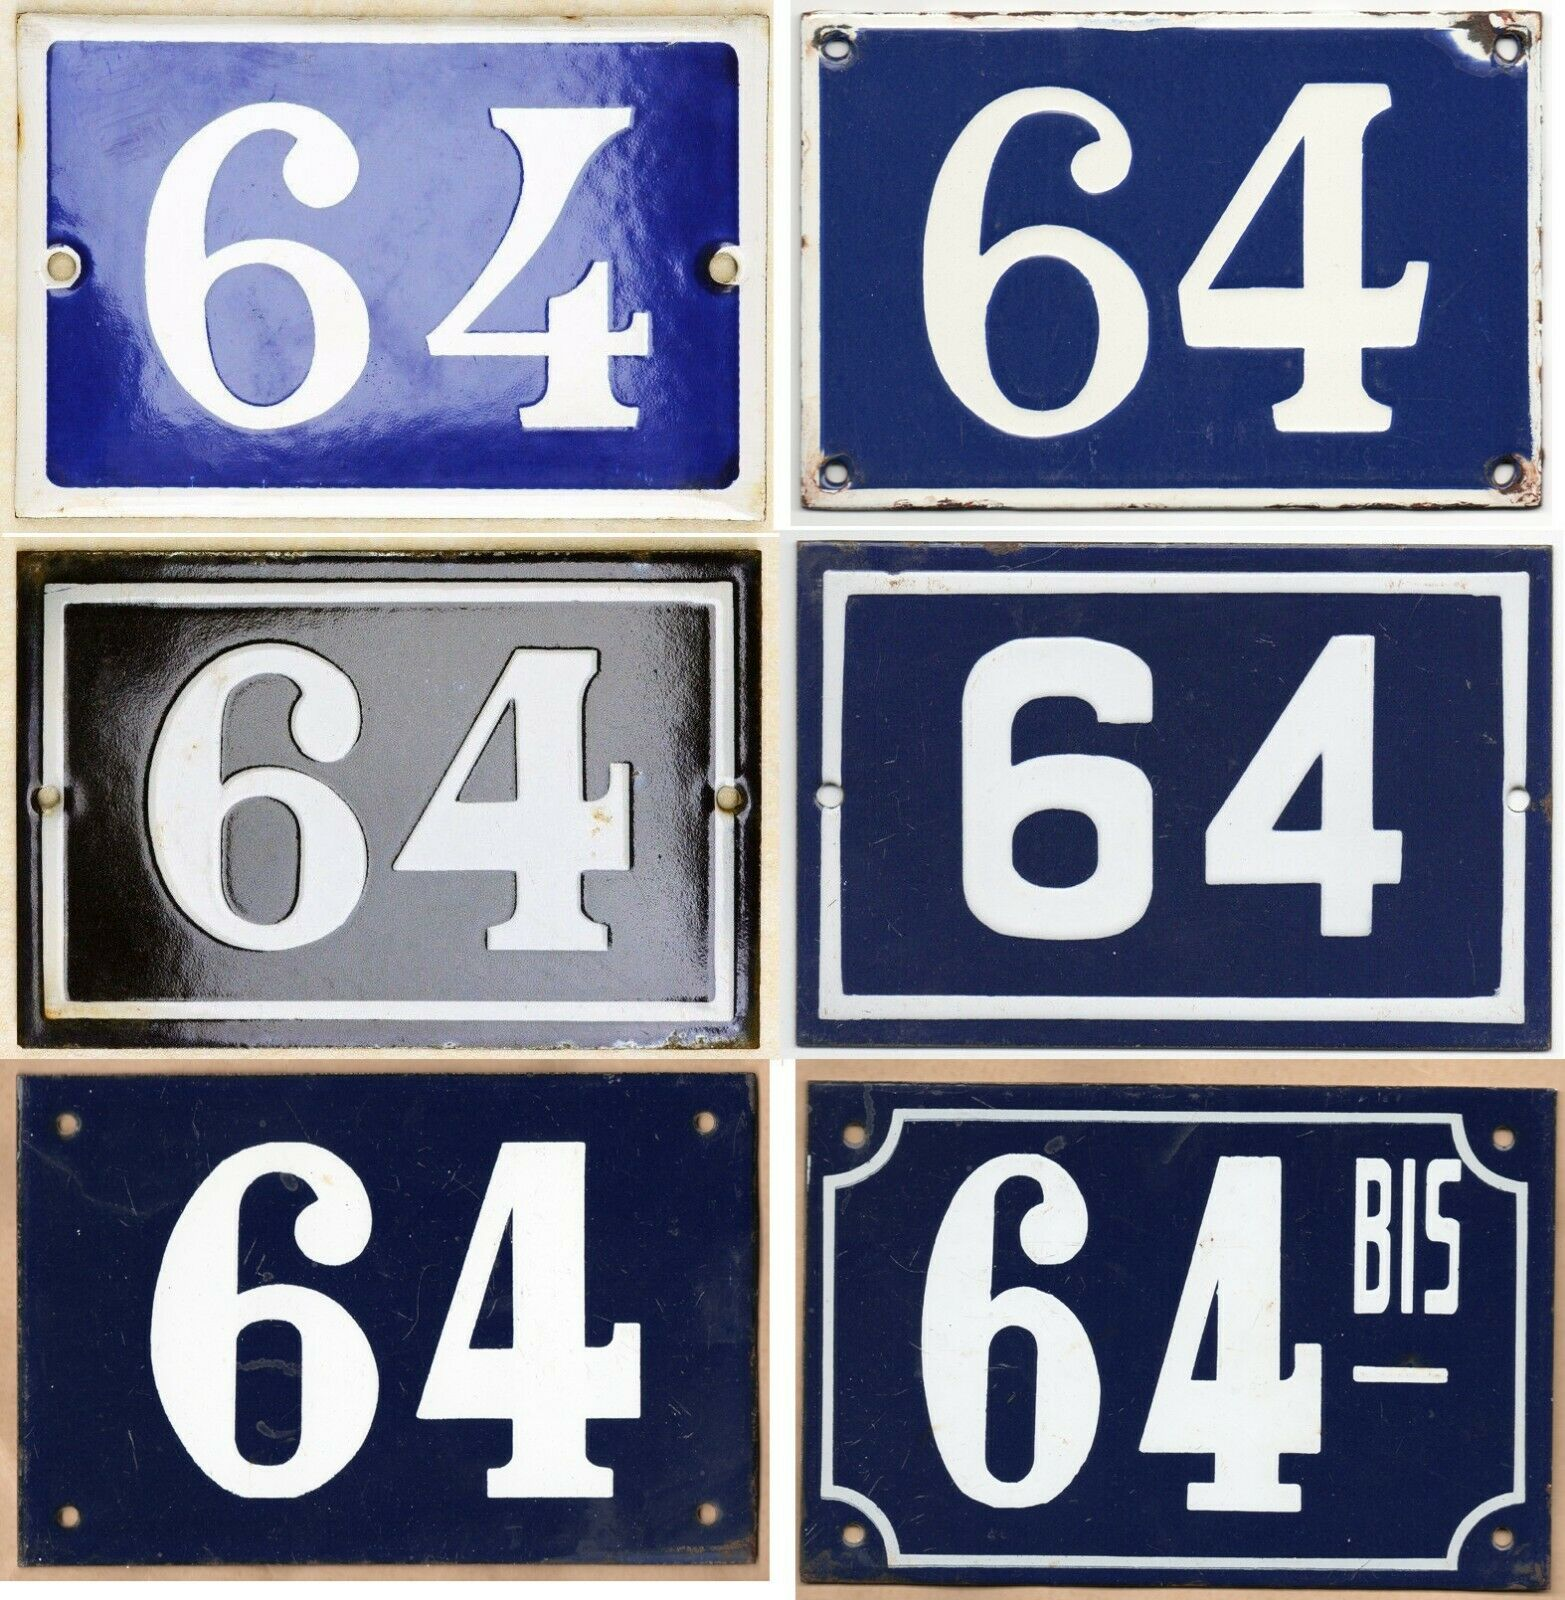 Old Blau French house number 64 door gate wall fence street sign plate plaque